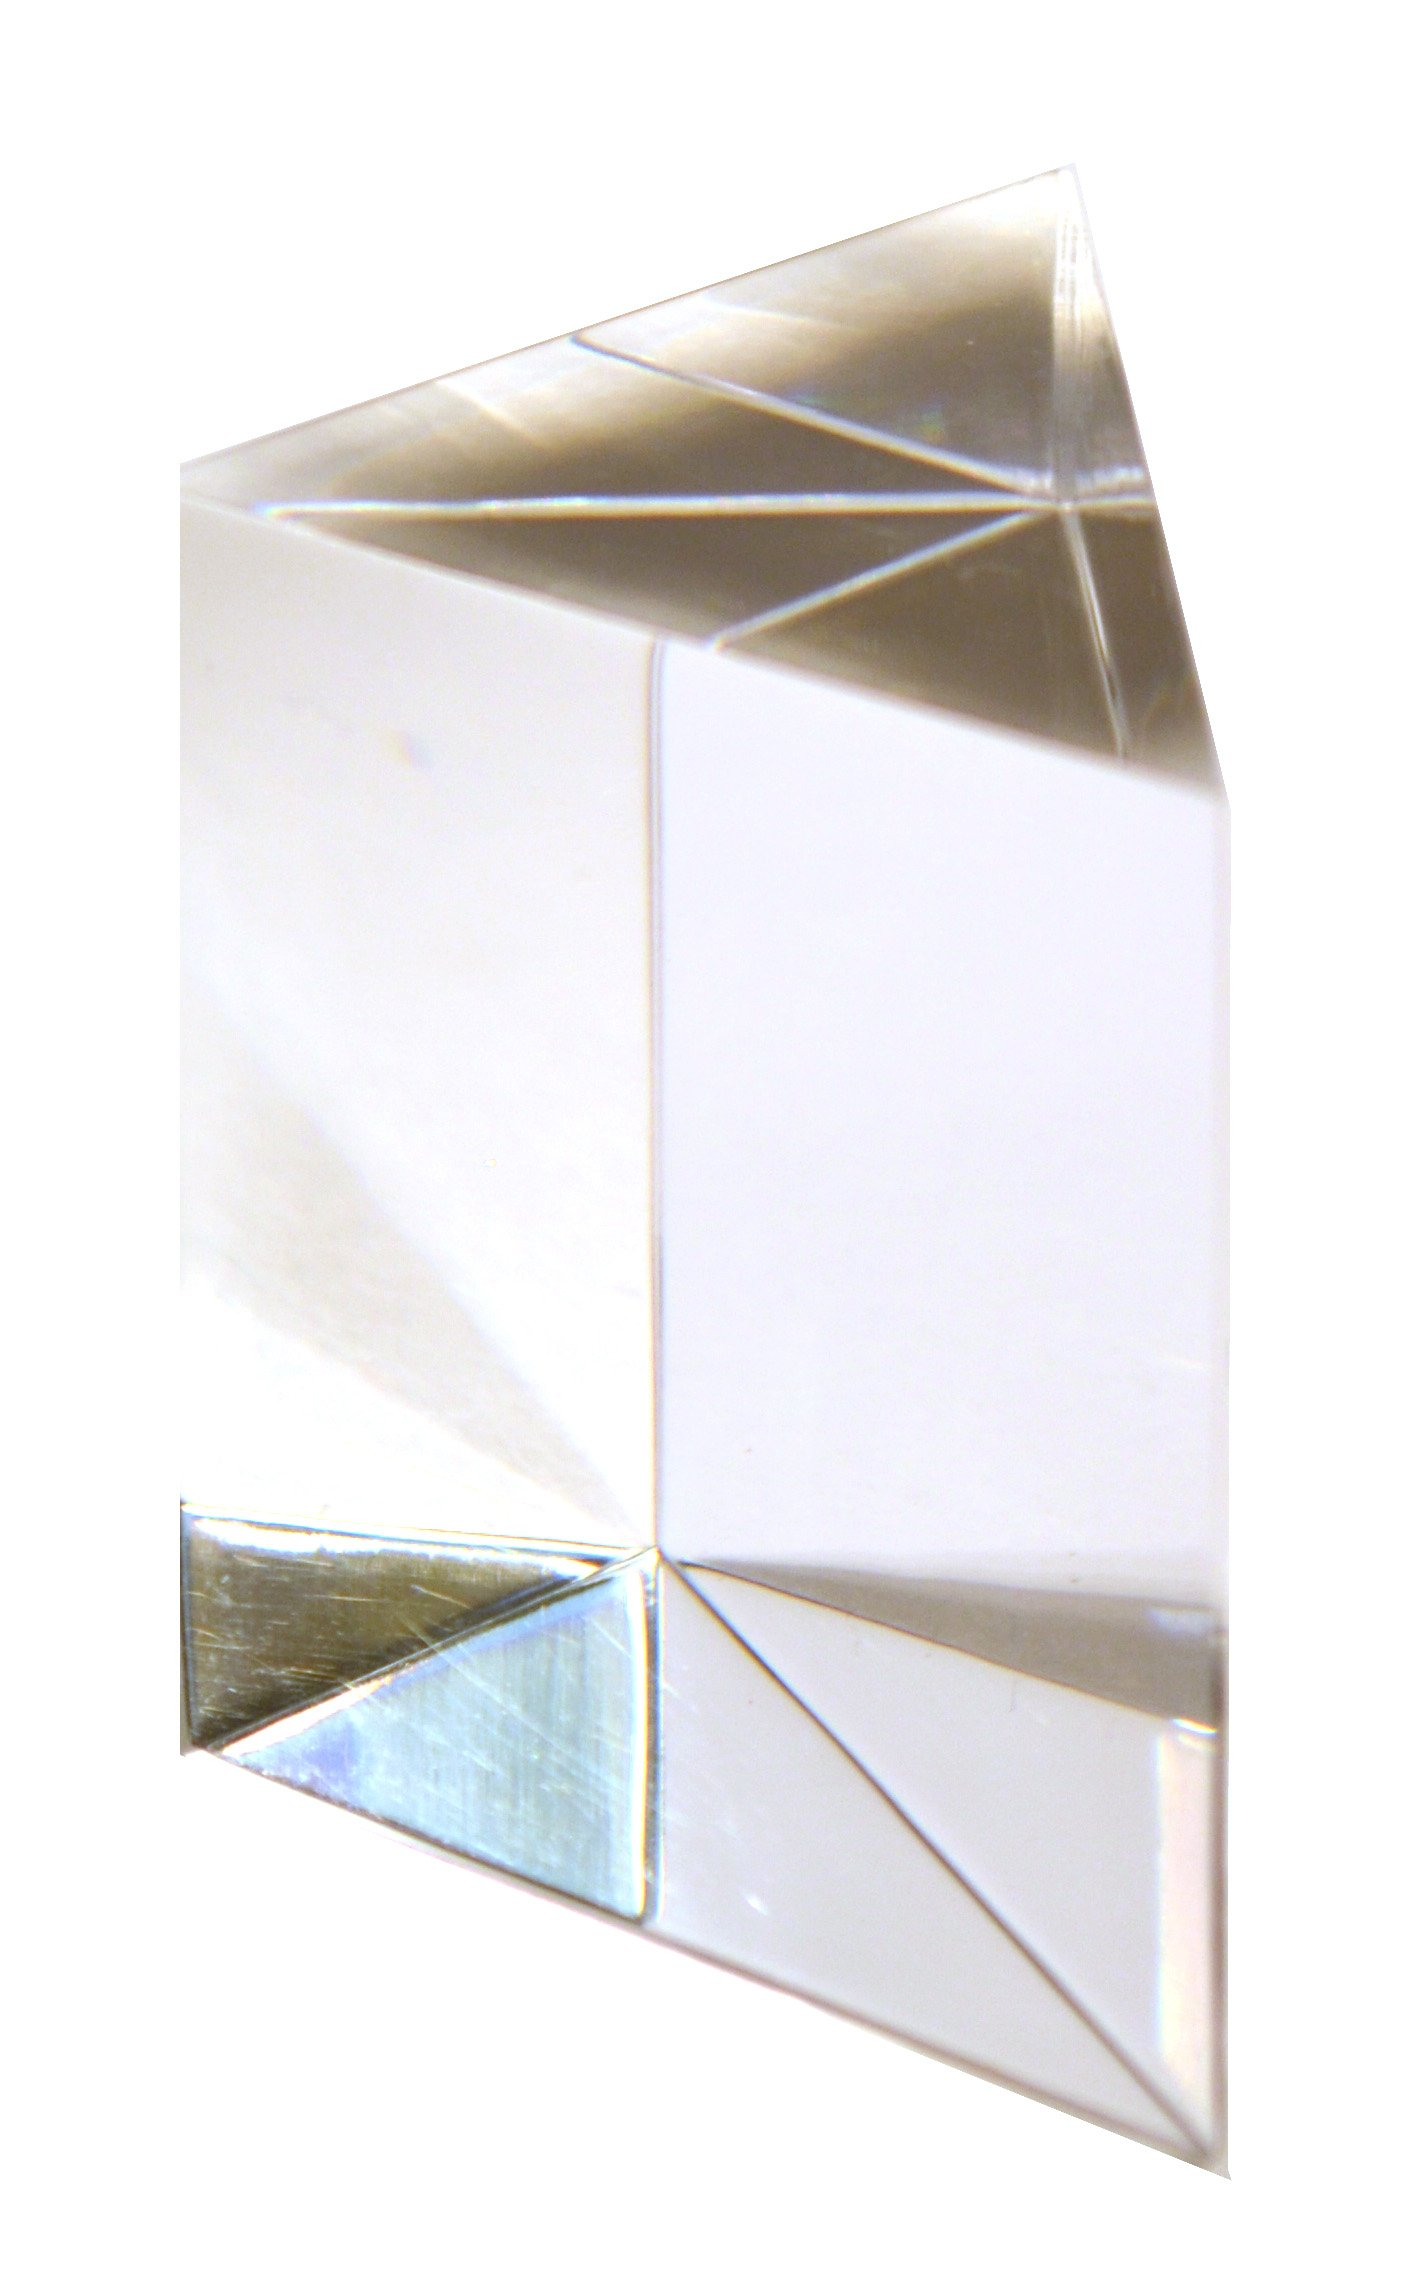 Large Right Angle Prism, 2.9''(74 mm) Hypotenuse, 2'' (50mm) Sides, Made of Acrylic